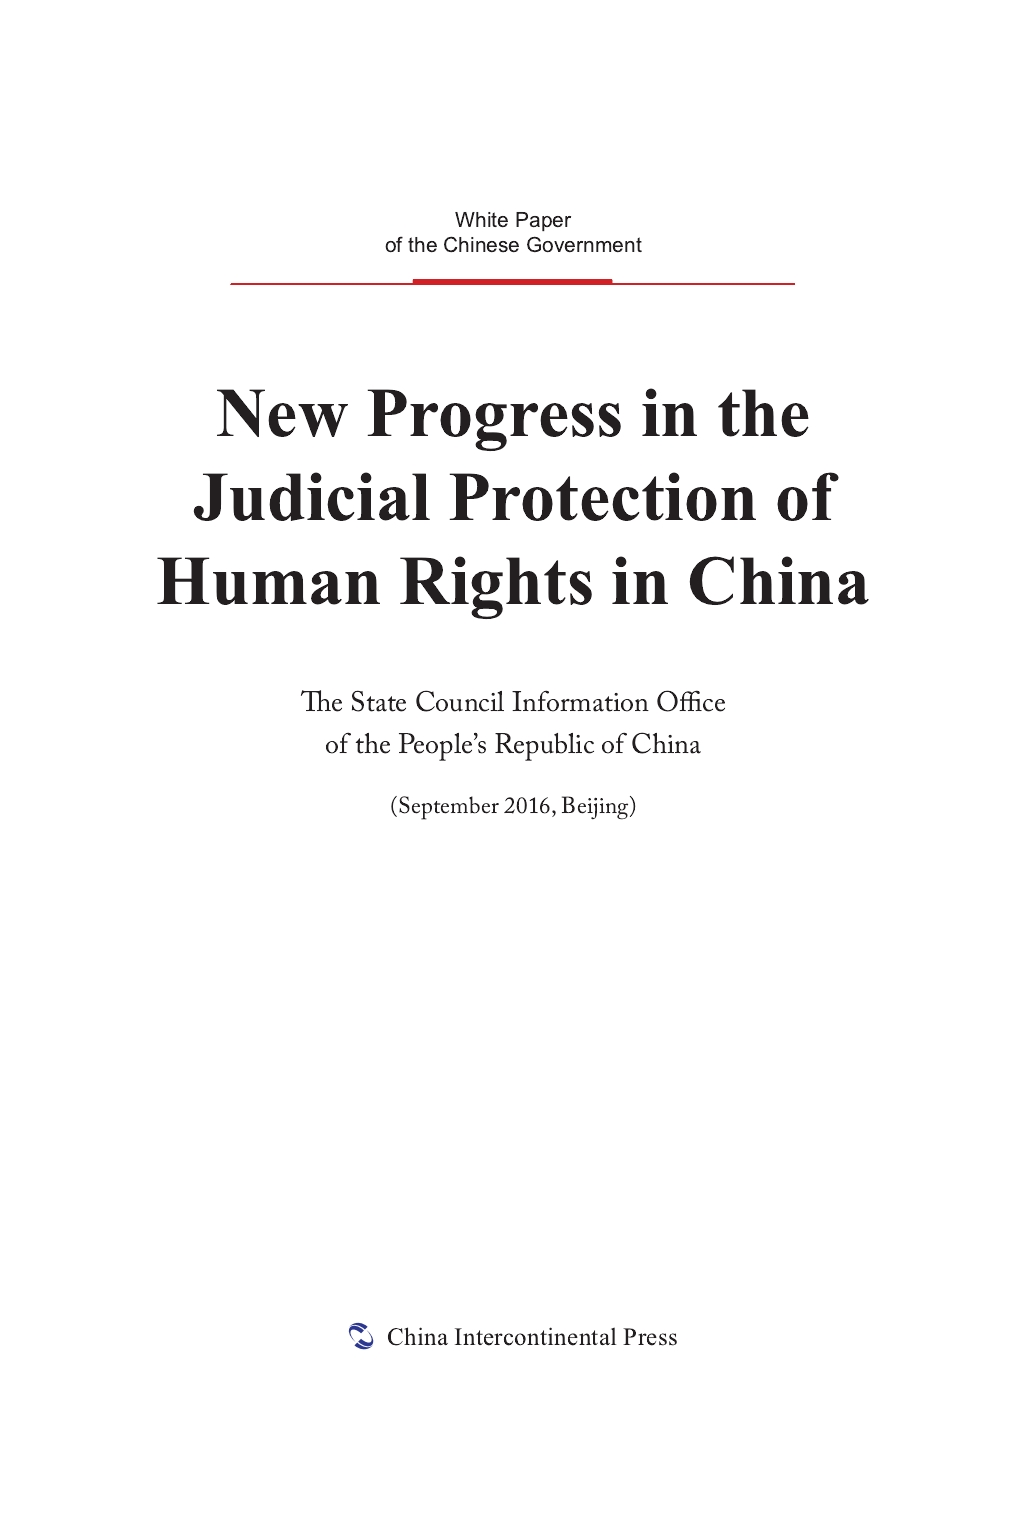 New Progress in the Judicial Protection of Human Rights in China